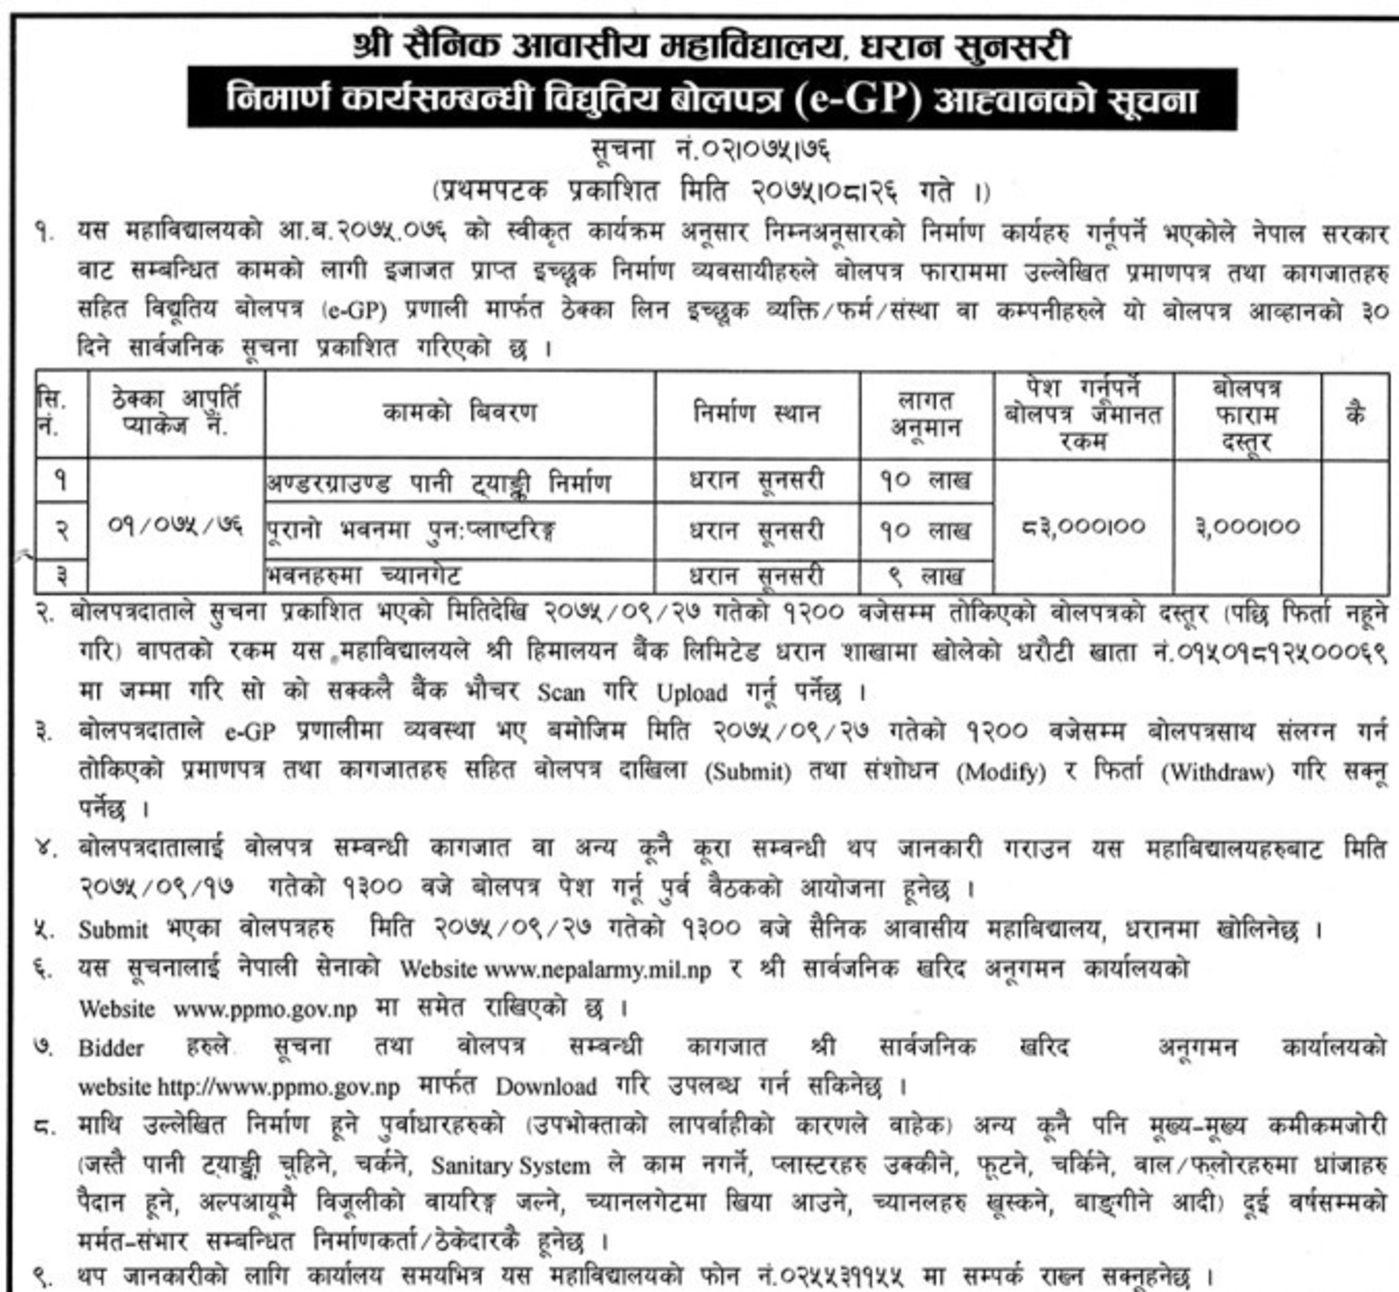 Bids and Tenders Nepal - Tender - Construction of Water Tank